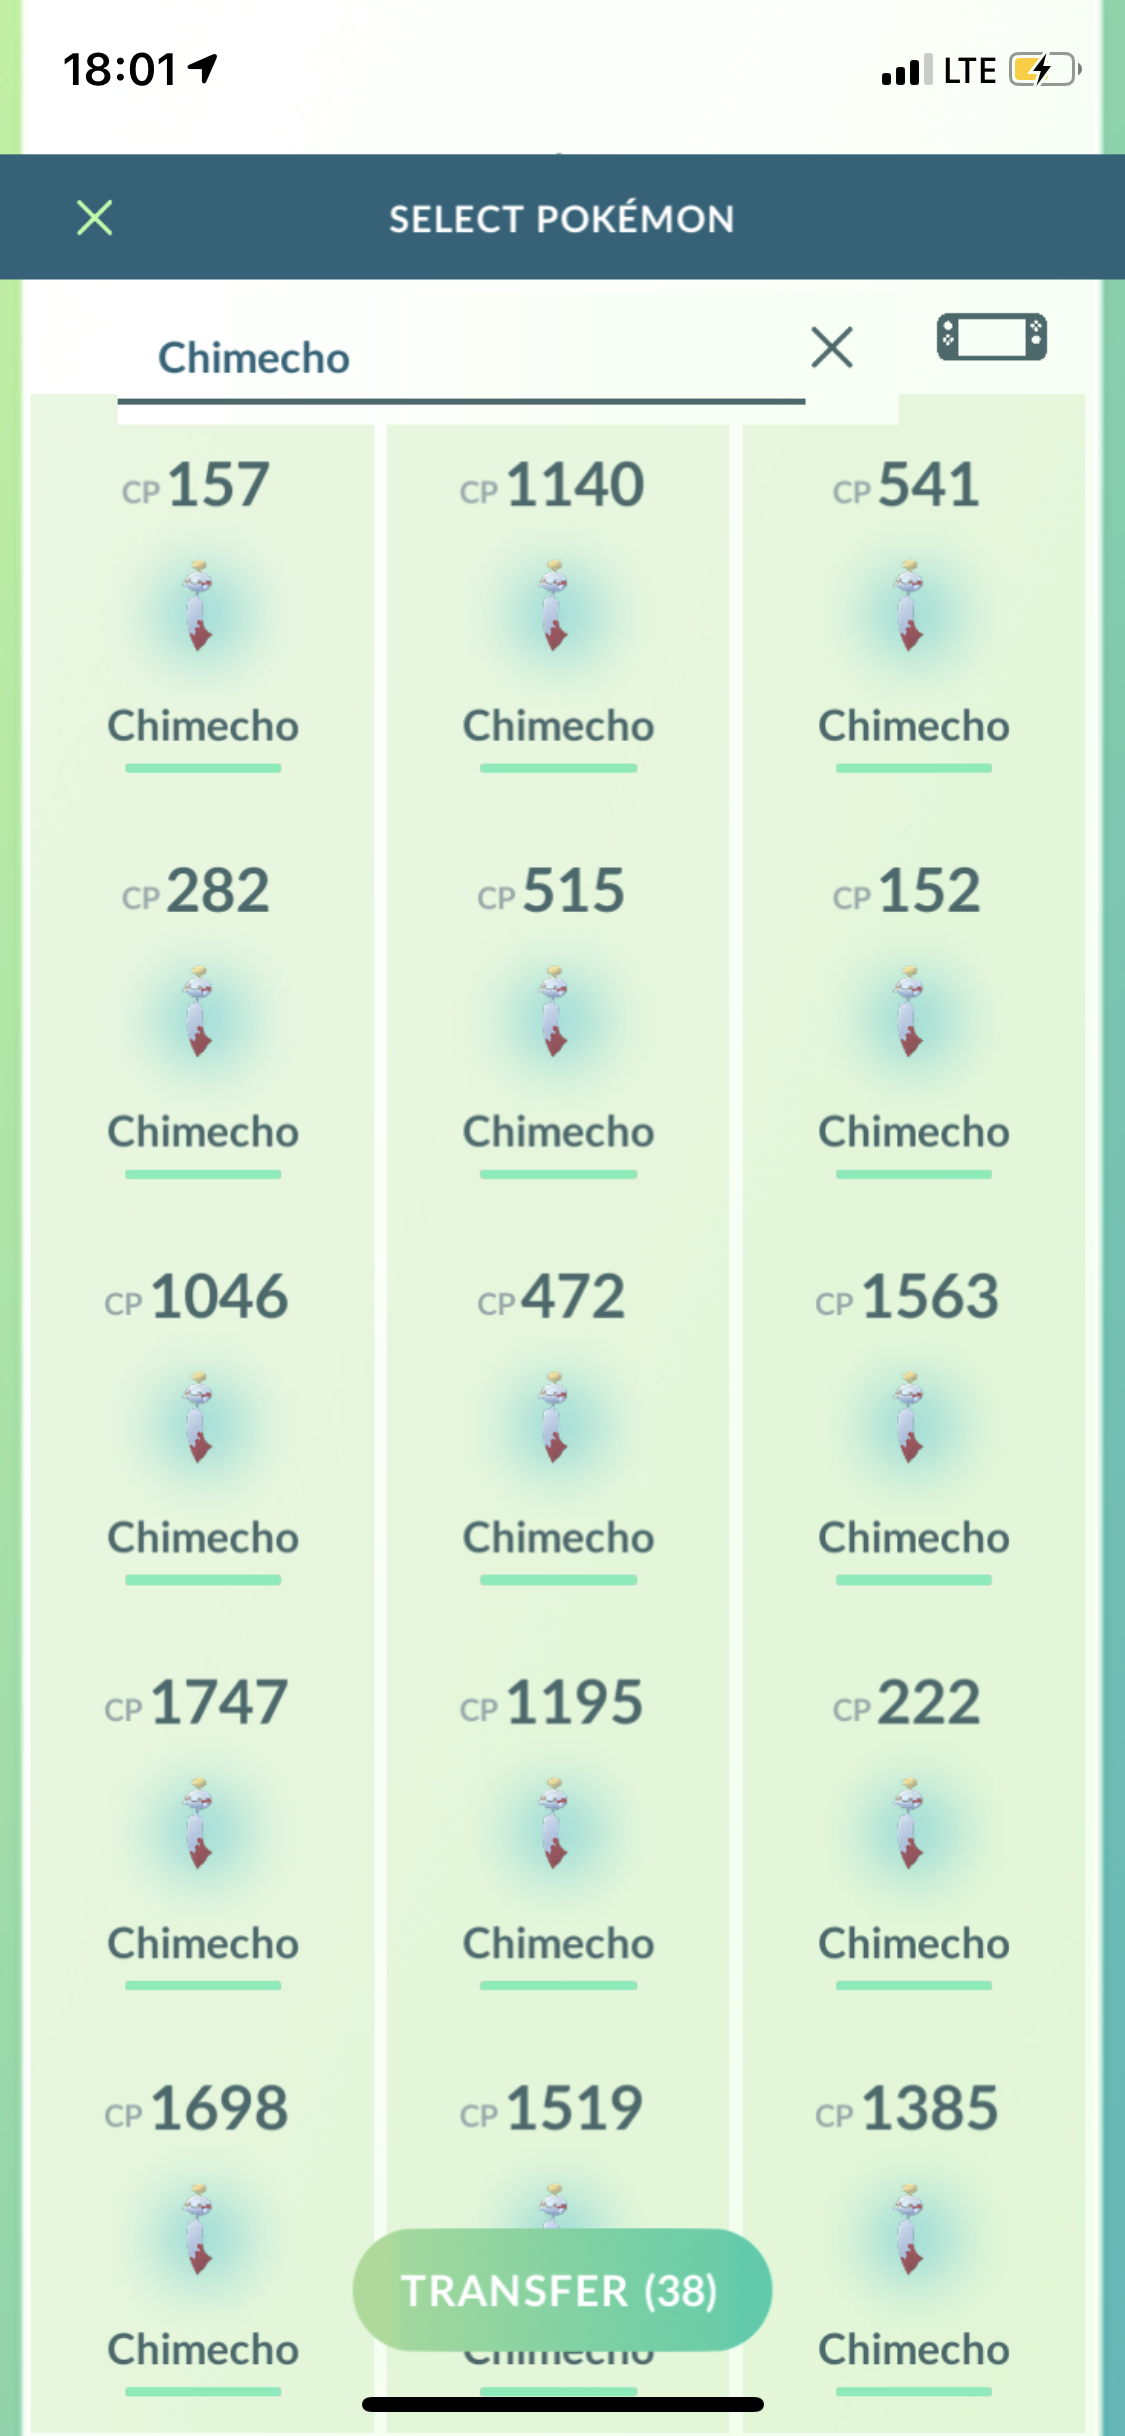 Go Fest Yokohama Tips and Tricks - Lots of Chimecho caught at Go Fest